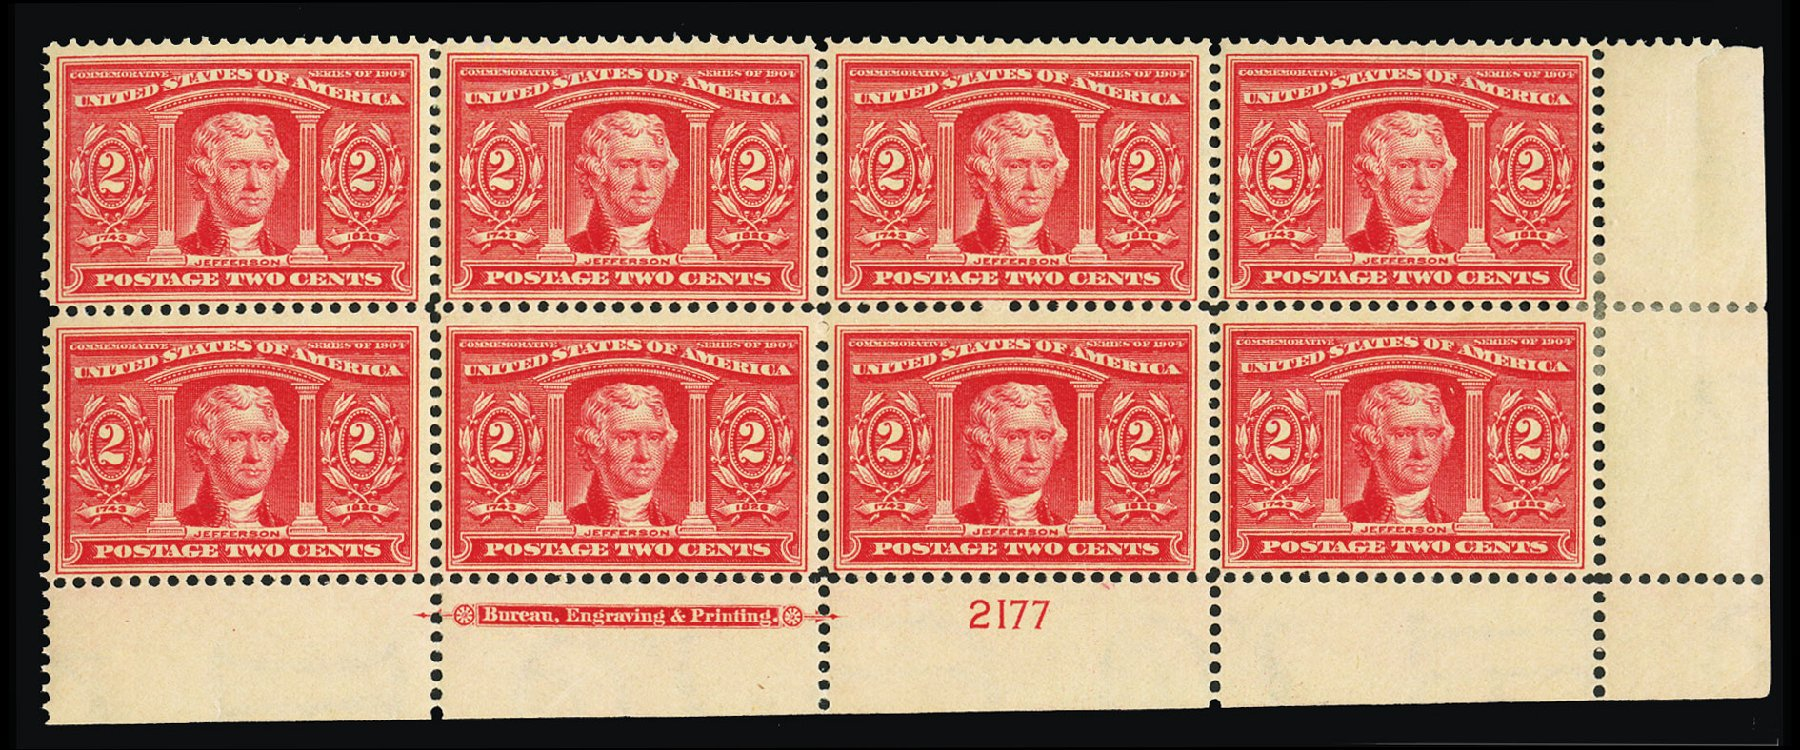 US Stamps Values Scott Catalog # 324: 1904 2c Louisiana Purchase Exposition. Cherrystone Auctions, Jul 2015, Sale 201507, Lot 2112